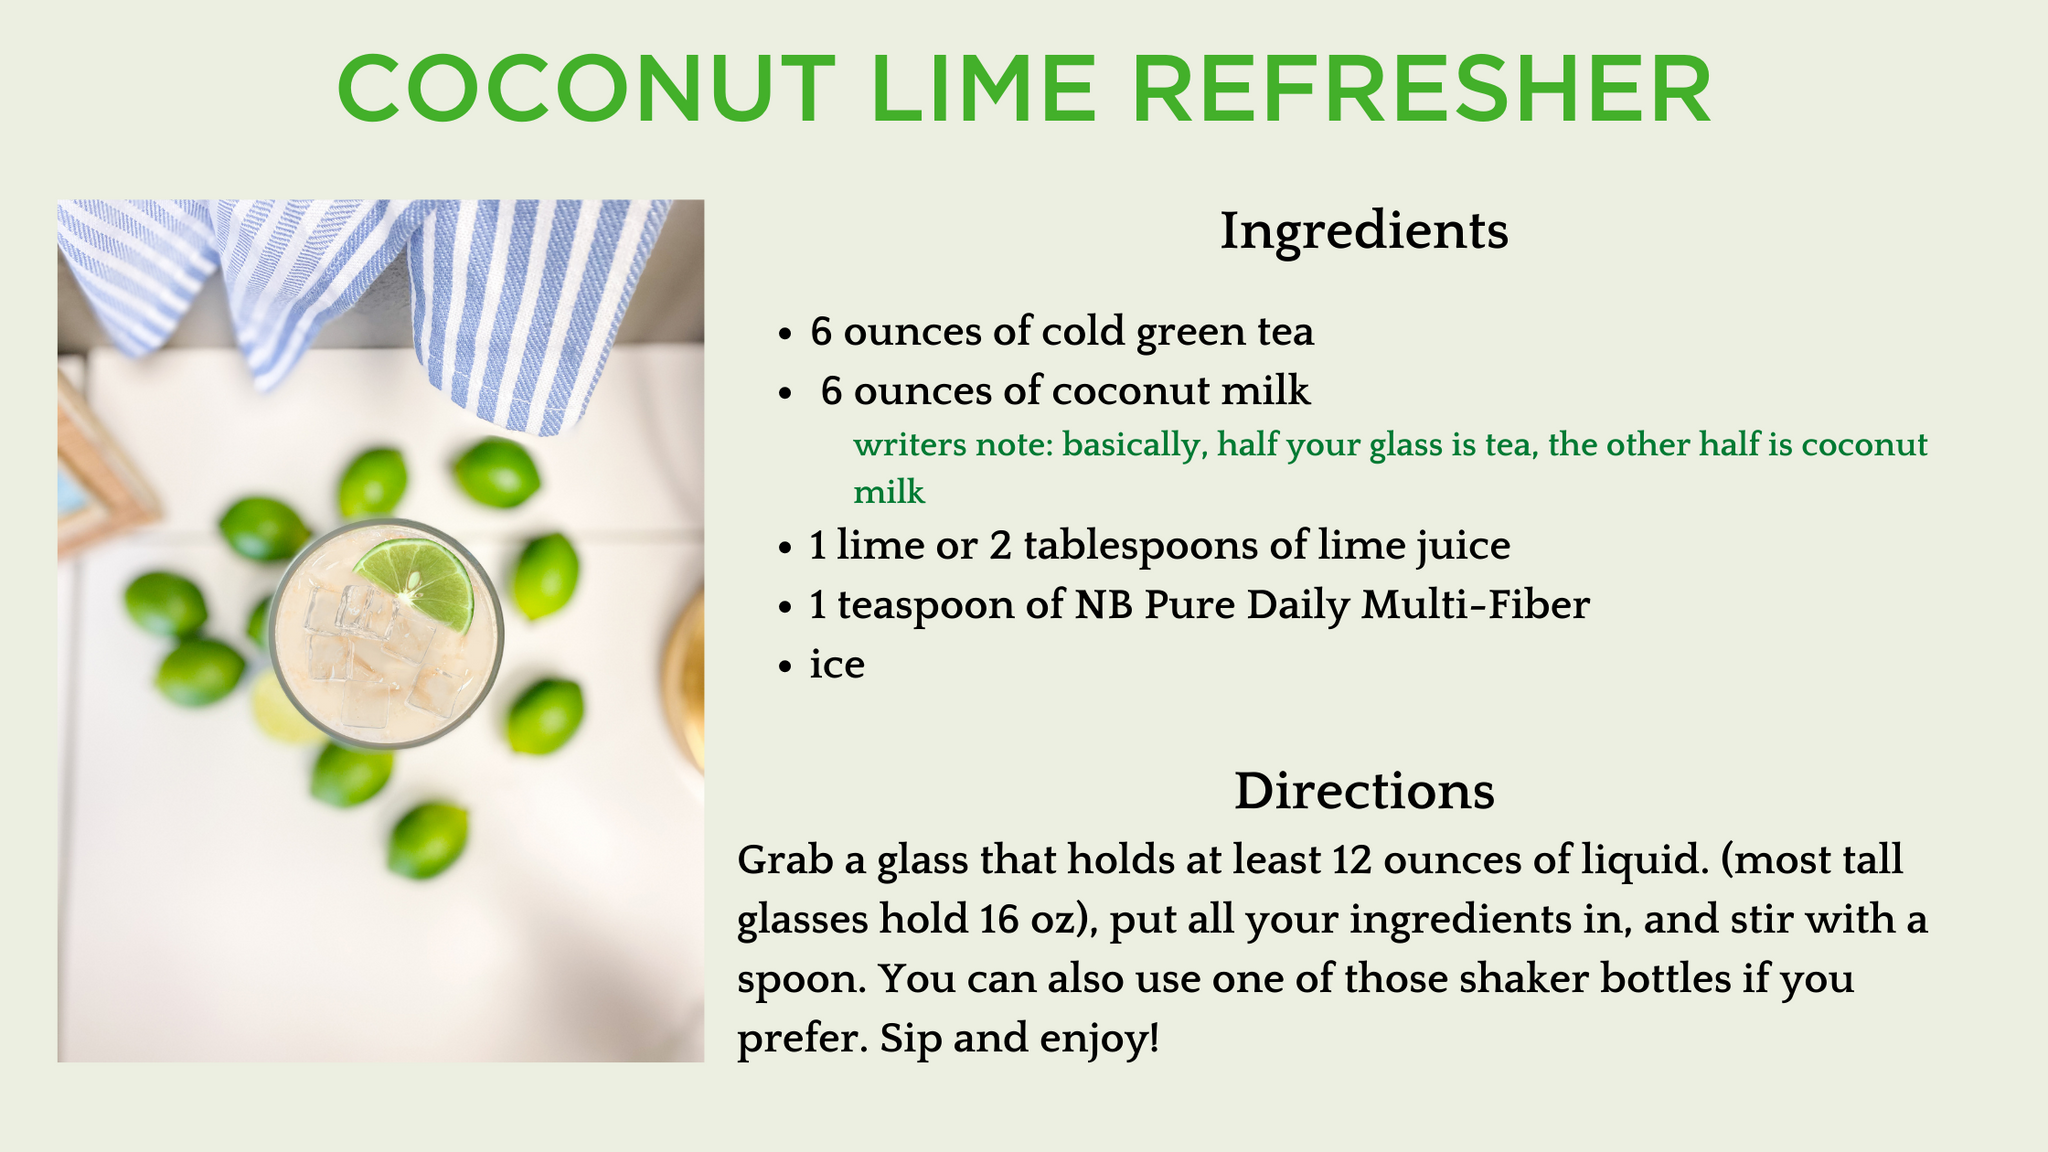 Ingredients  6 ounces of cold green tea  6 ounces of coconut milk writers note: basically, half your glass is tea, the other half is coconut milk 1 lime or 2 tablespoons of lime juice 1 teaspoon of NB Pure Daily Multi-Fiber ice  Directions Grab a glass that holds at least 12 ounces of liquid. (most tall glasses hold 16 oz), put all your ingredients in, and stir with a spoon. You can also use one of those shaker bottles if you prefer. Sip and enjoy!